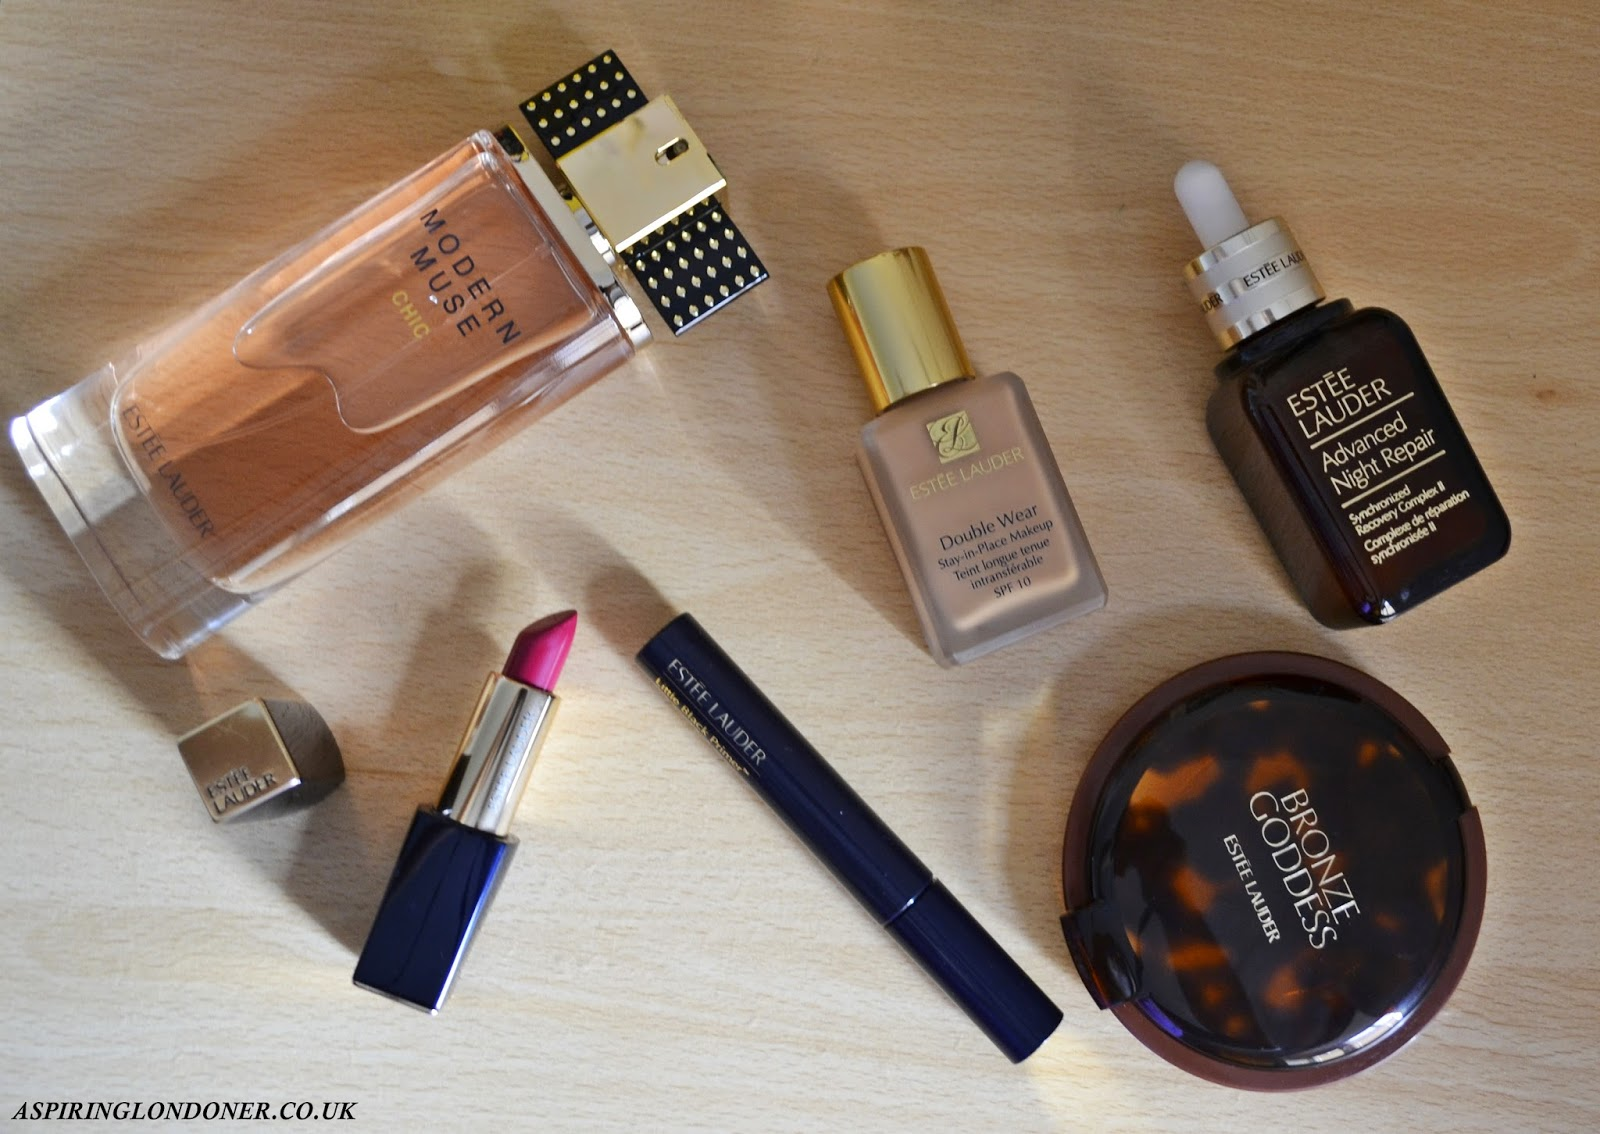 Best of Estee Lauder Review - Aspiring Londoner